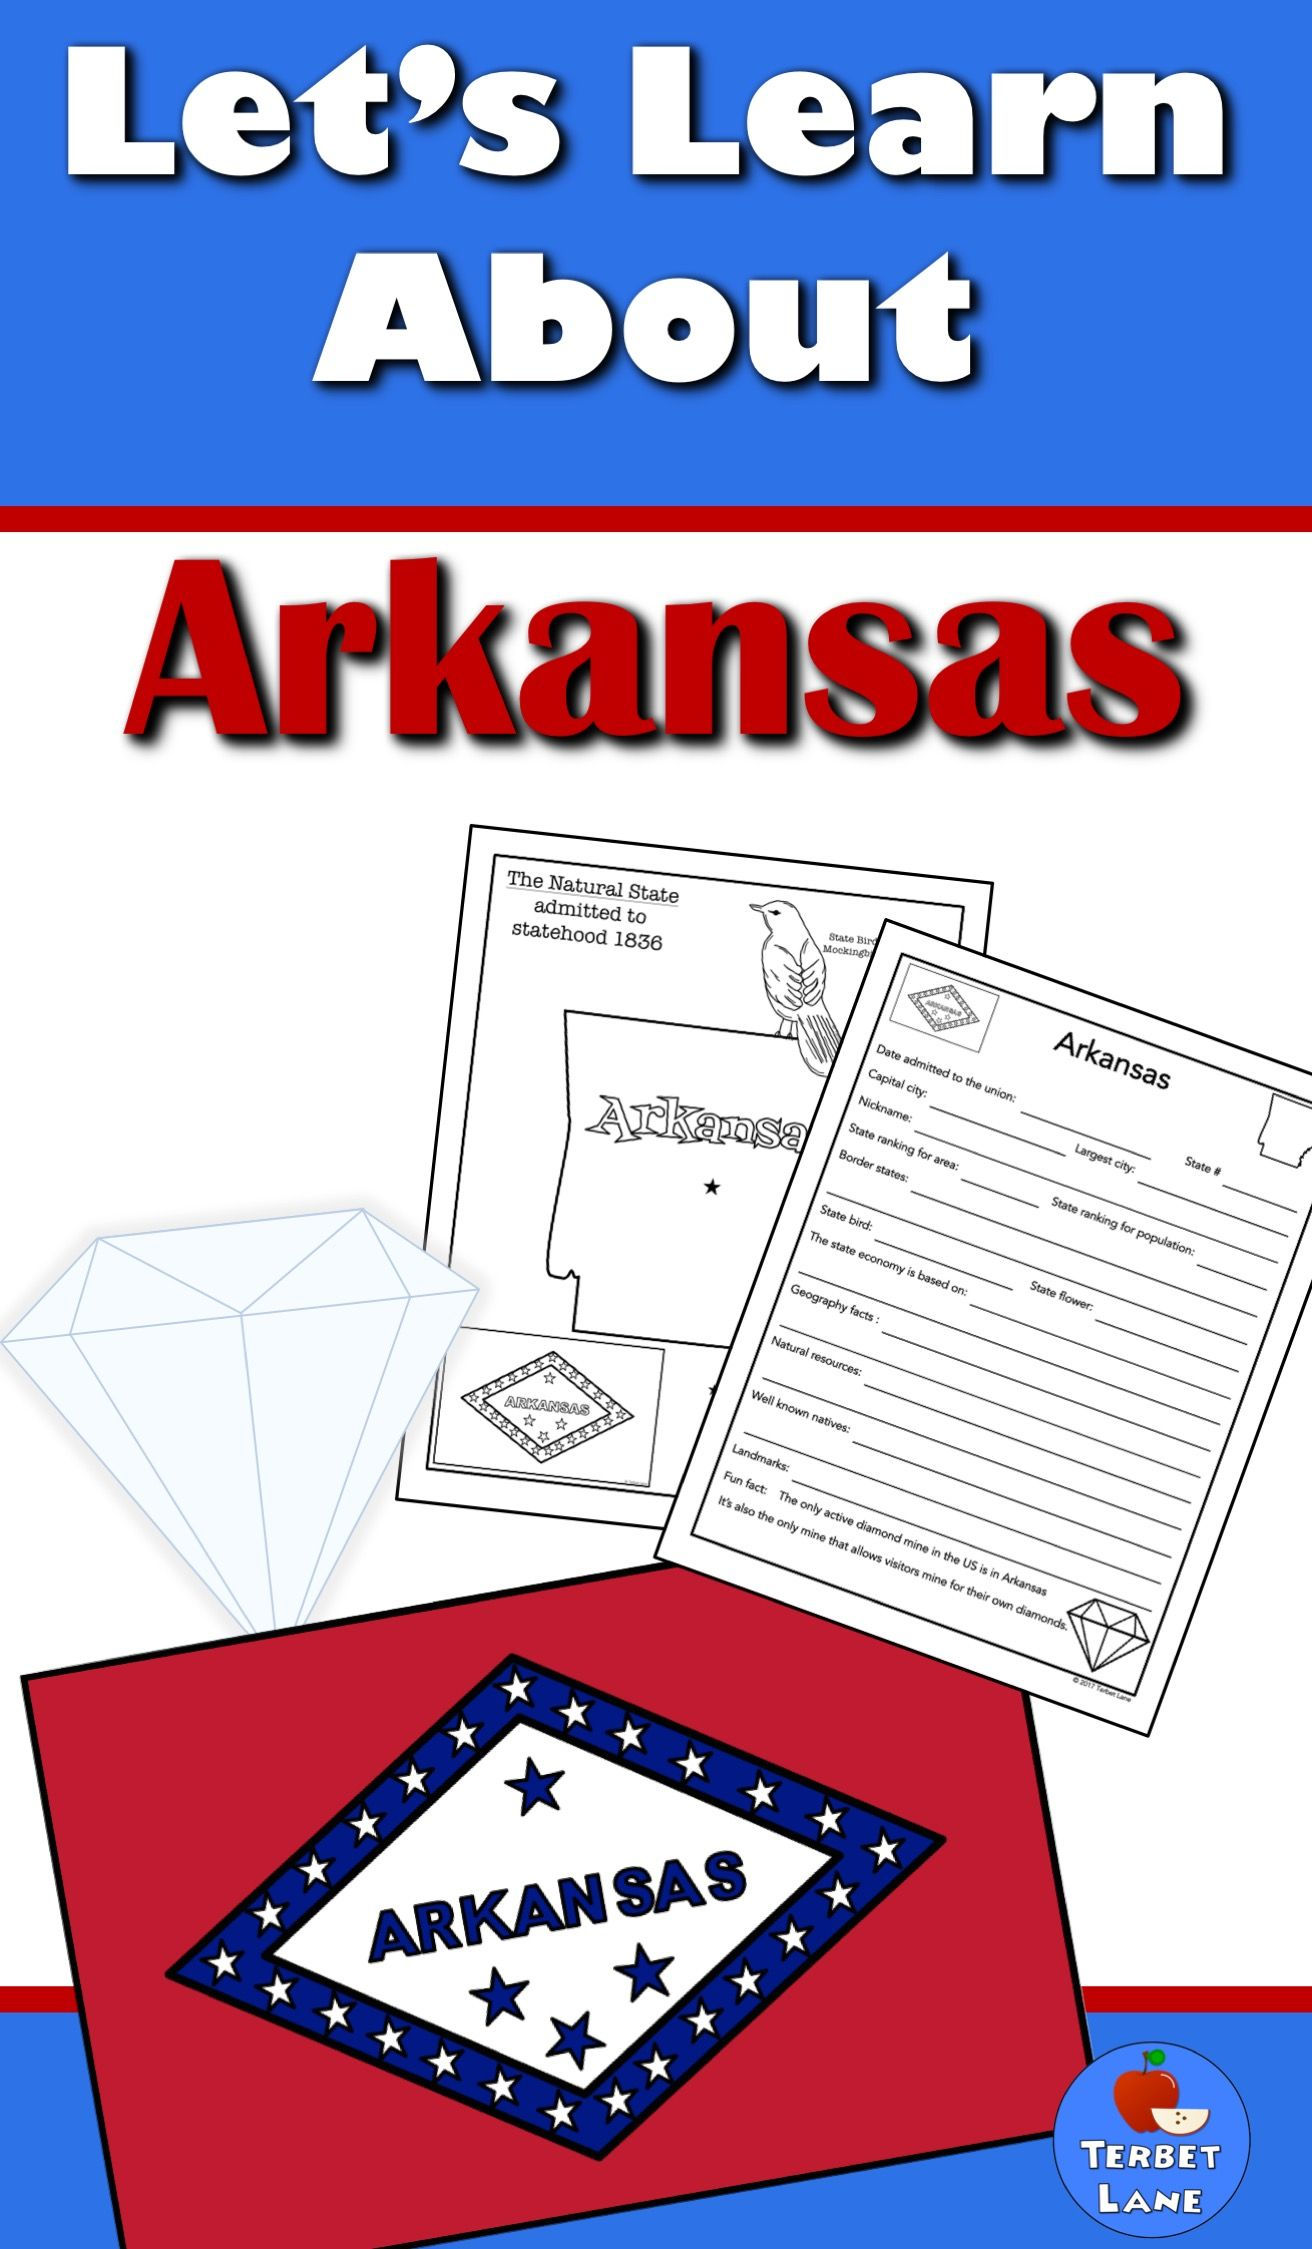 Arkansas History And Symbols Unit Study Unit Studies Geography